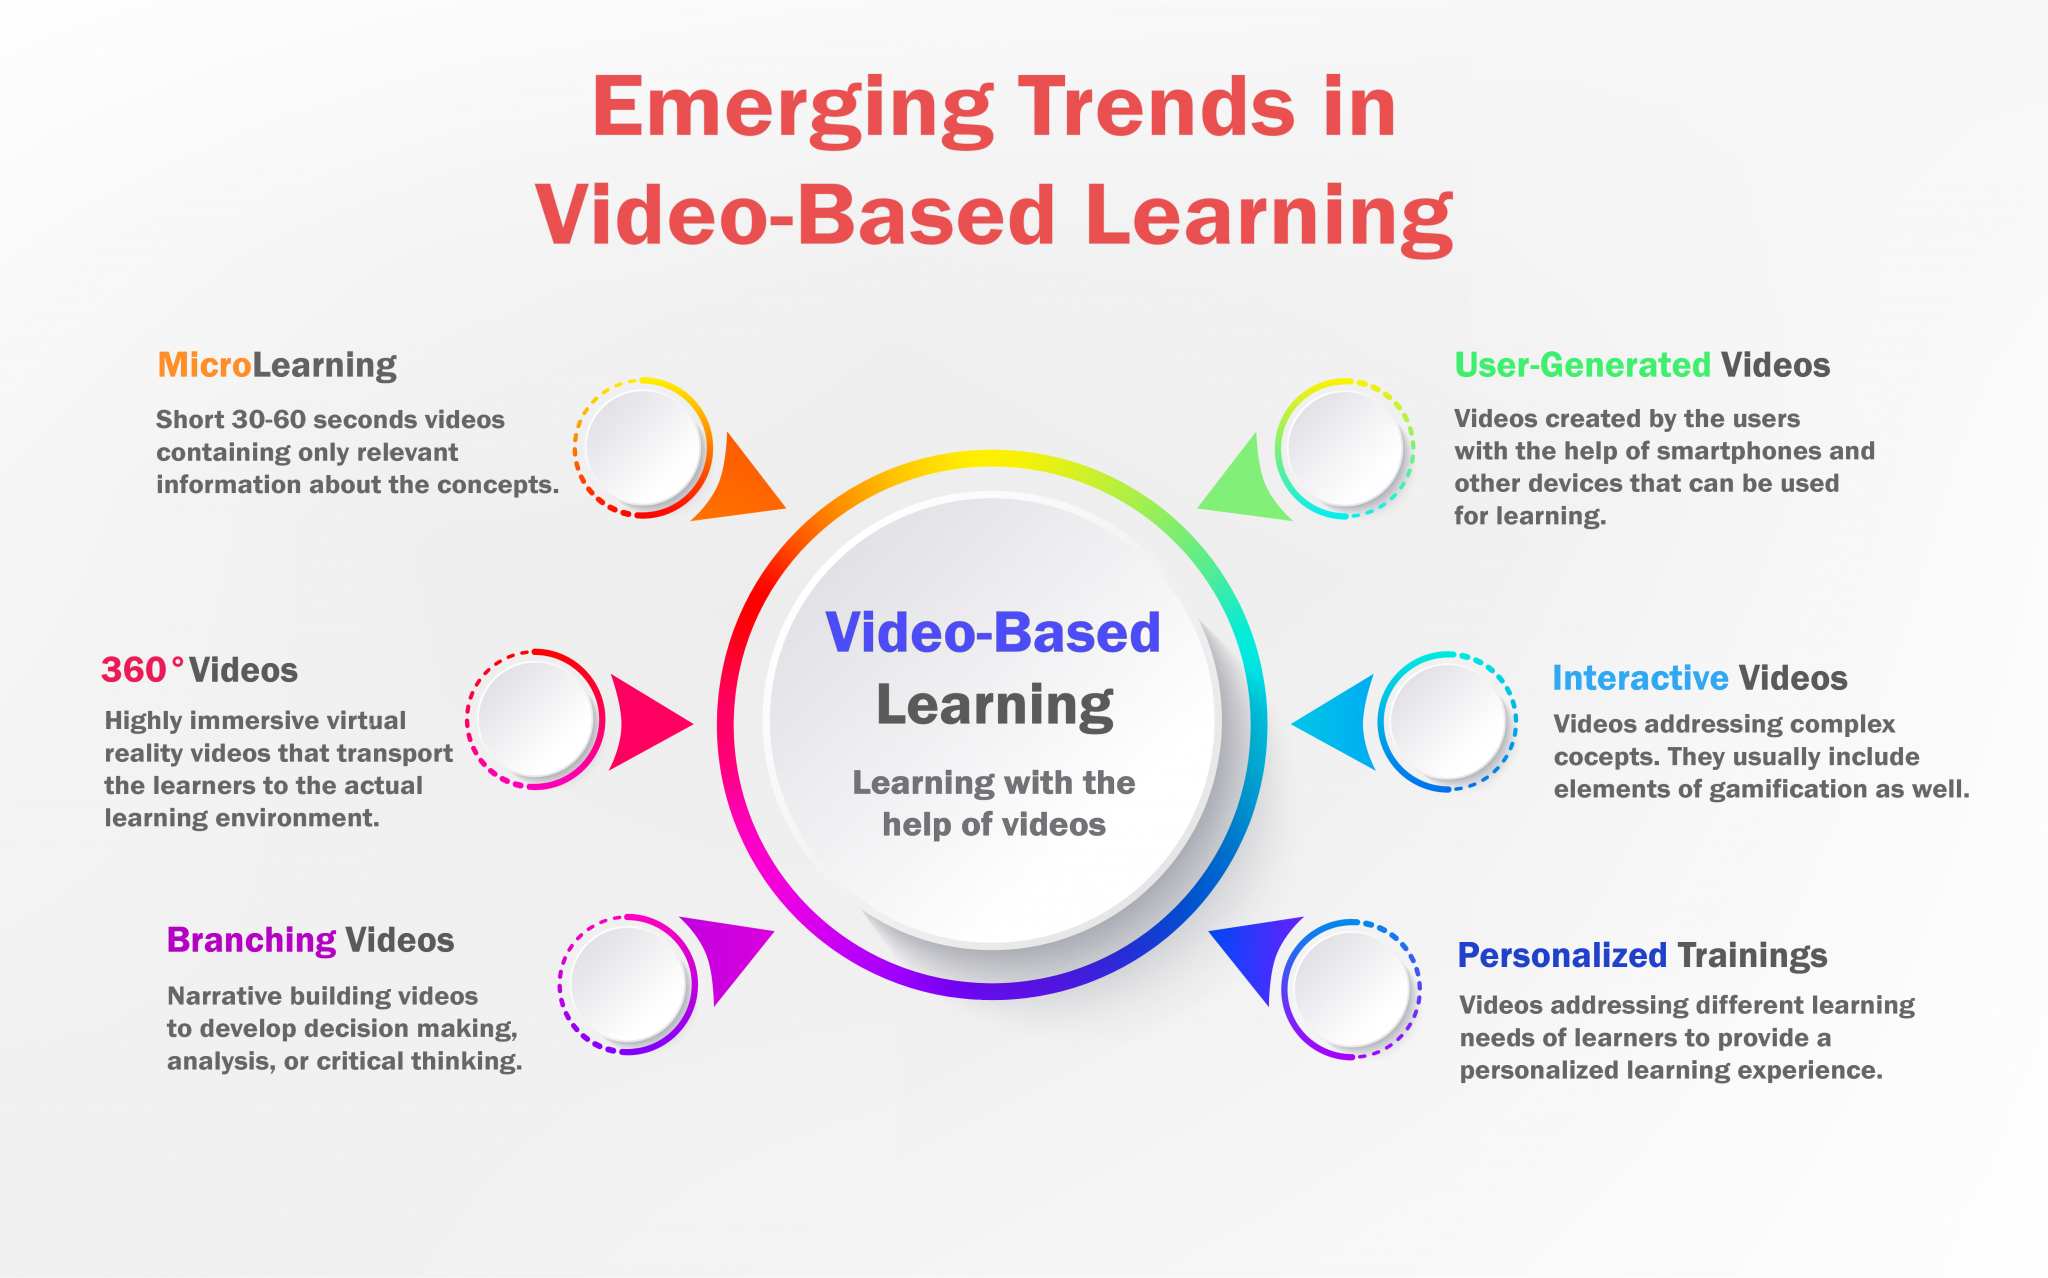 Emerging Trends in Video-Based Learning